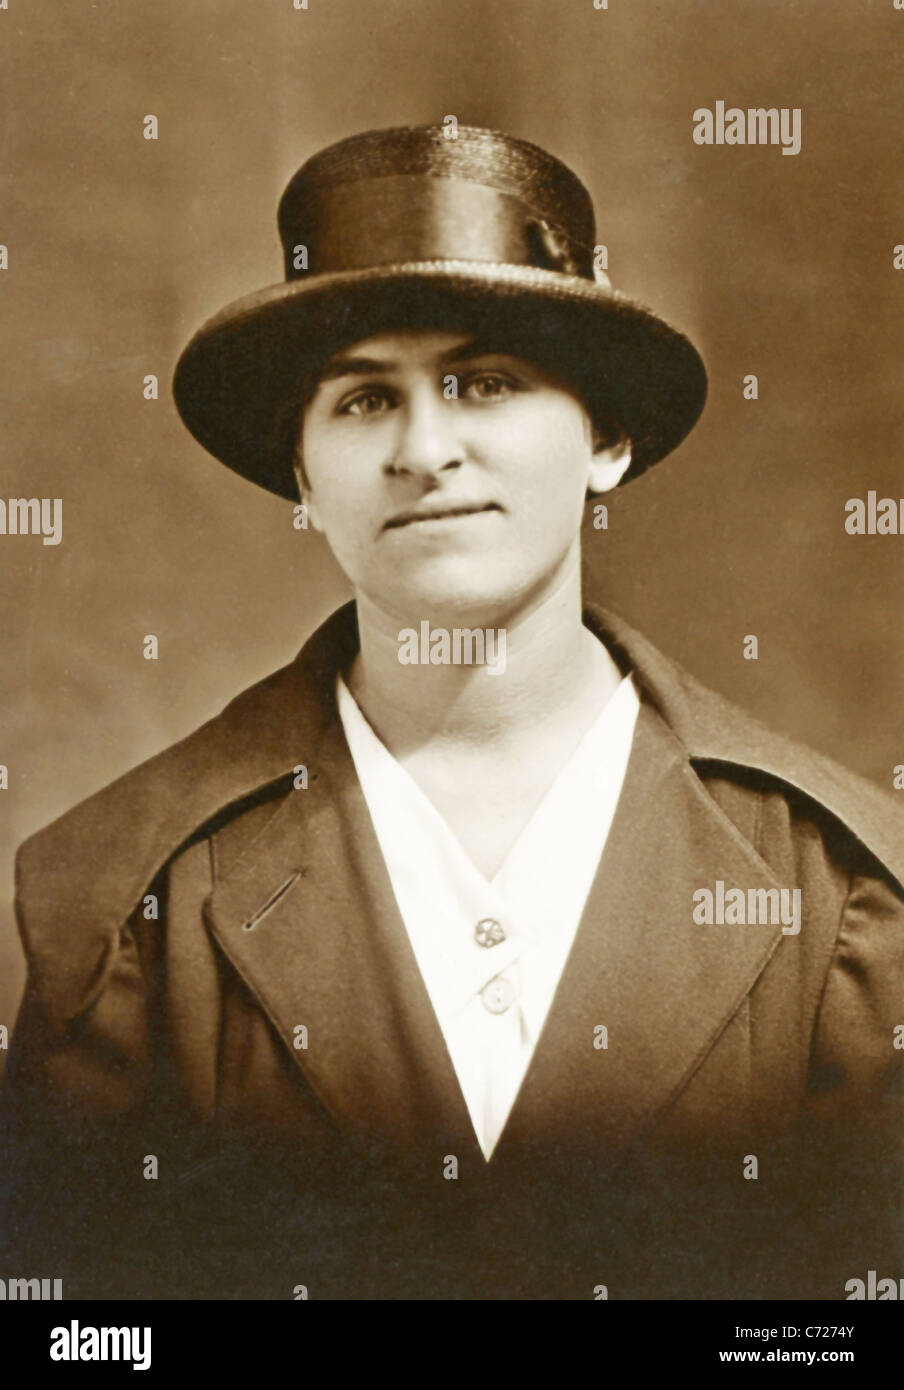 The photo, which dates to around 1915, shows a woman in New Bedford, Massachusetts. - Stock Image